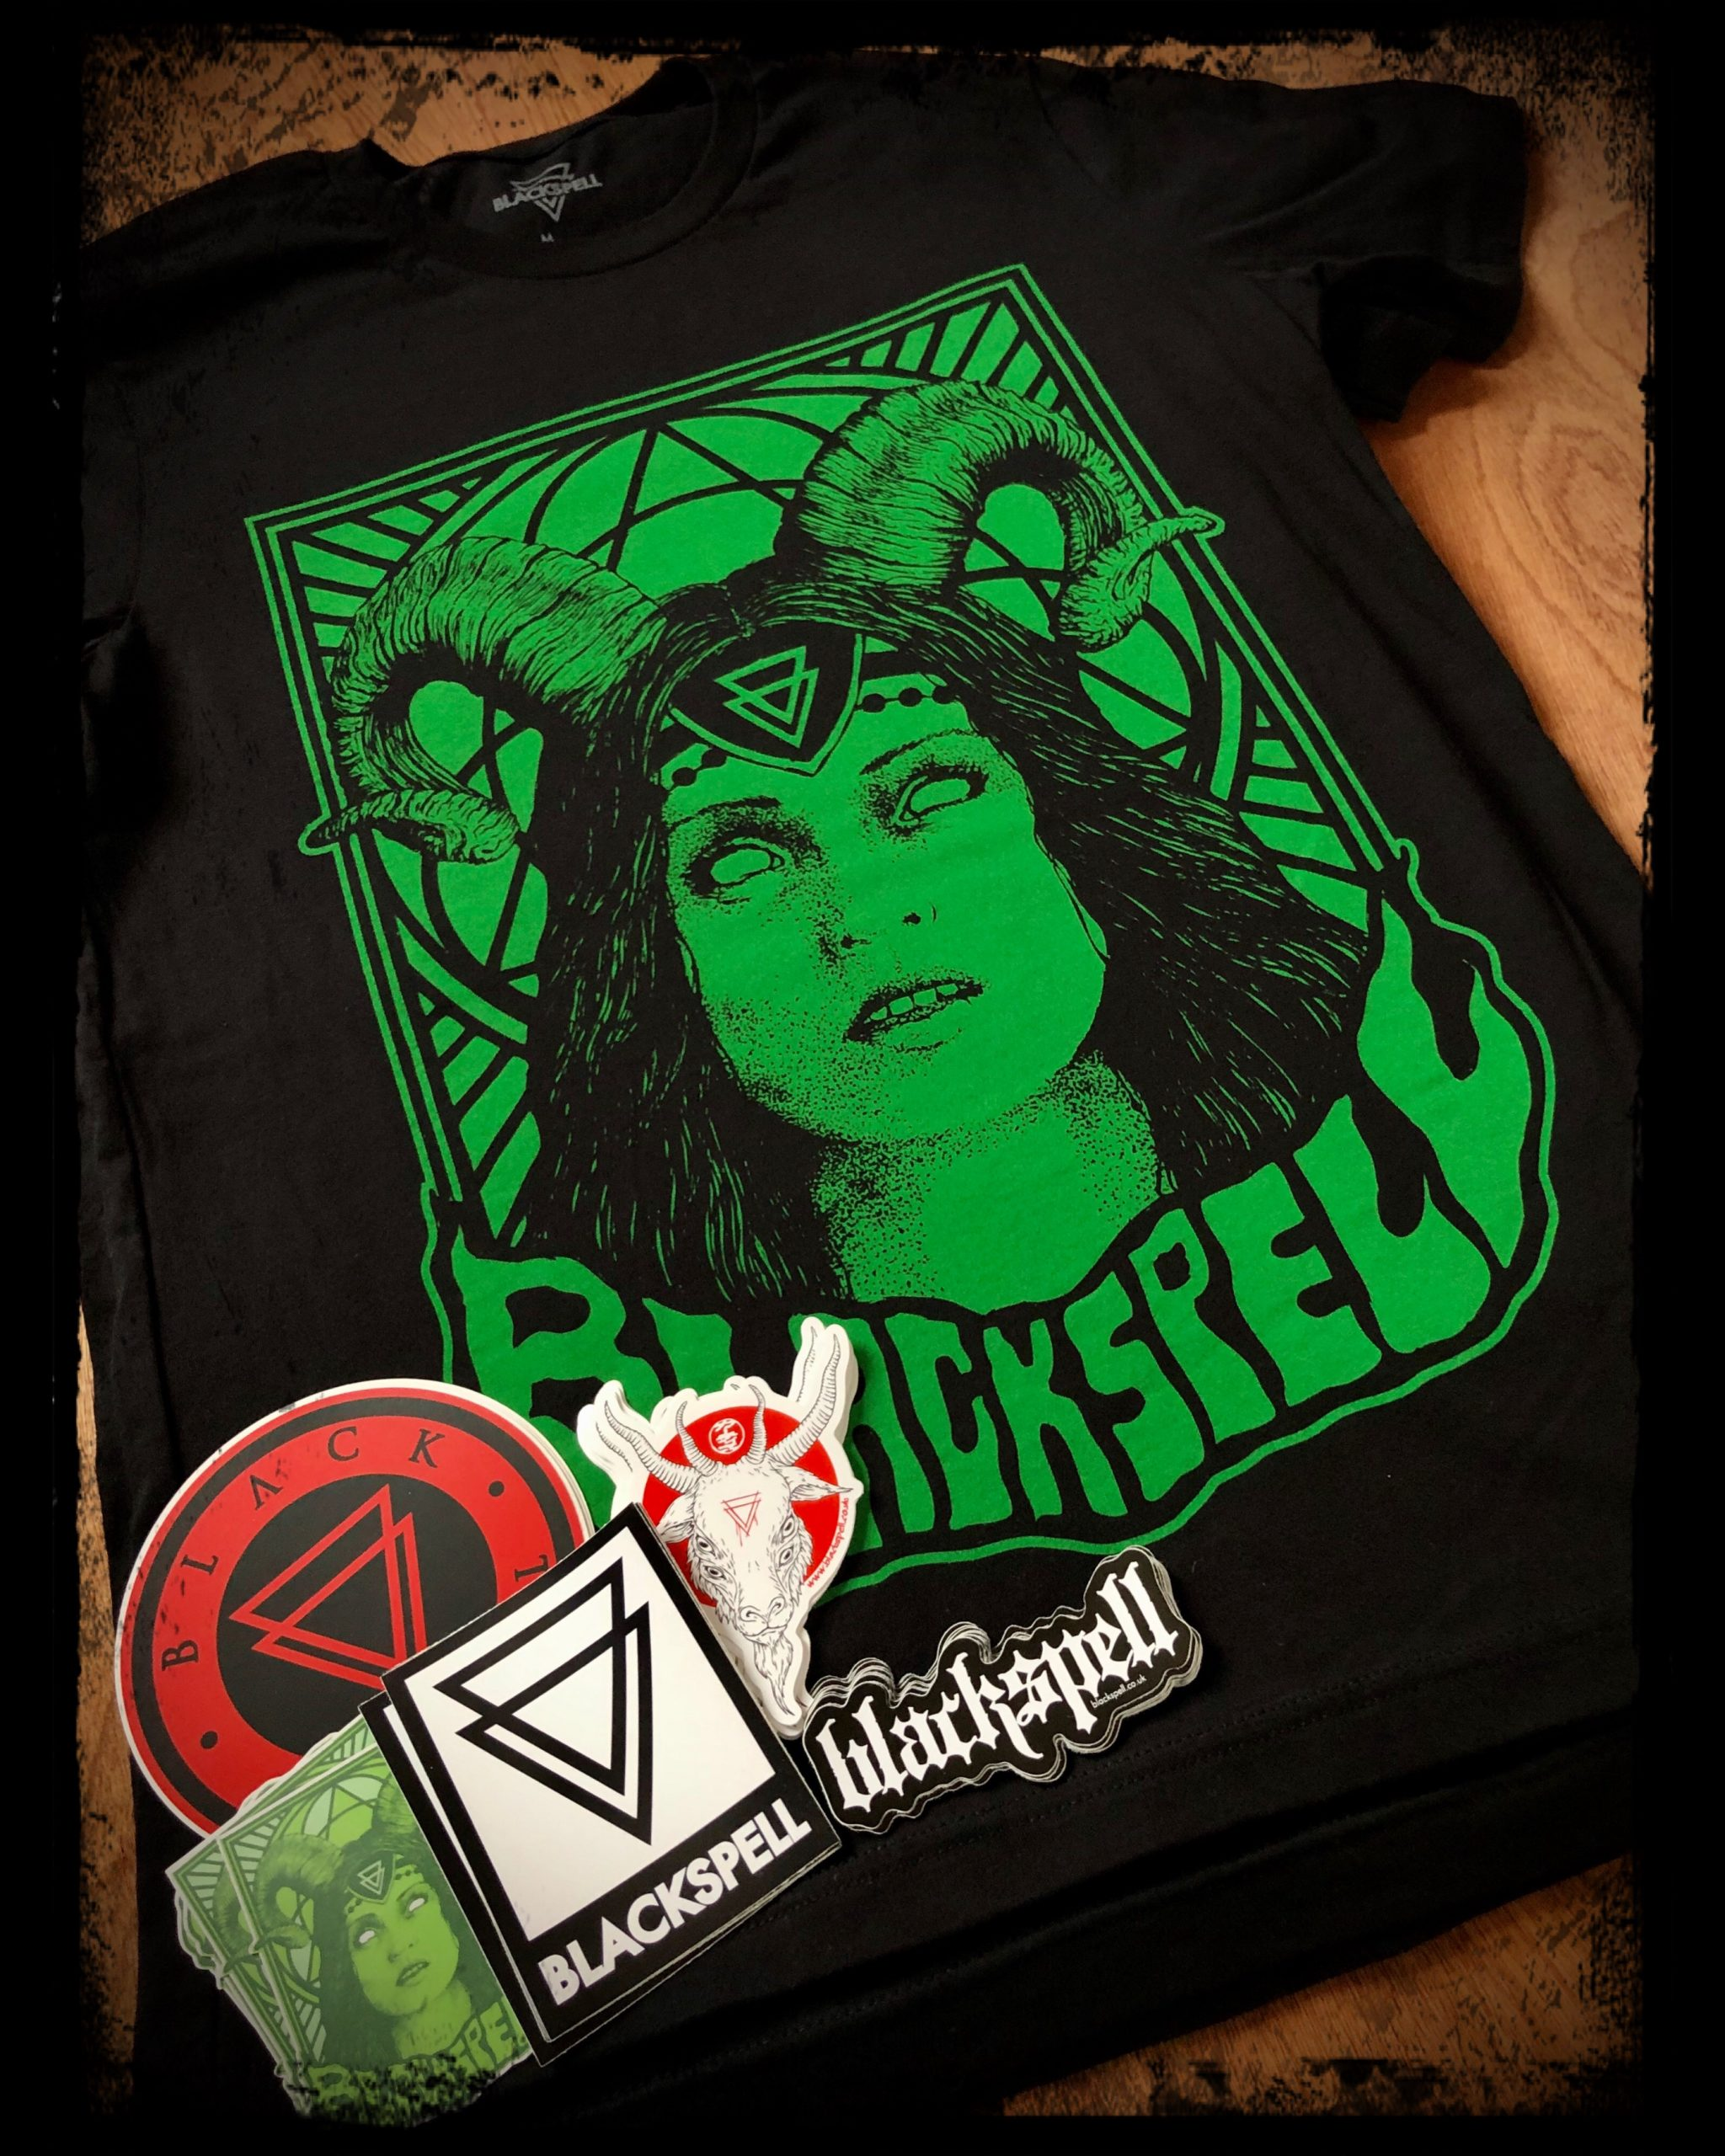 Goat Witch T-Shirt And Sticker Pack GIVEAWAY!